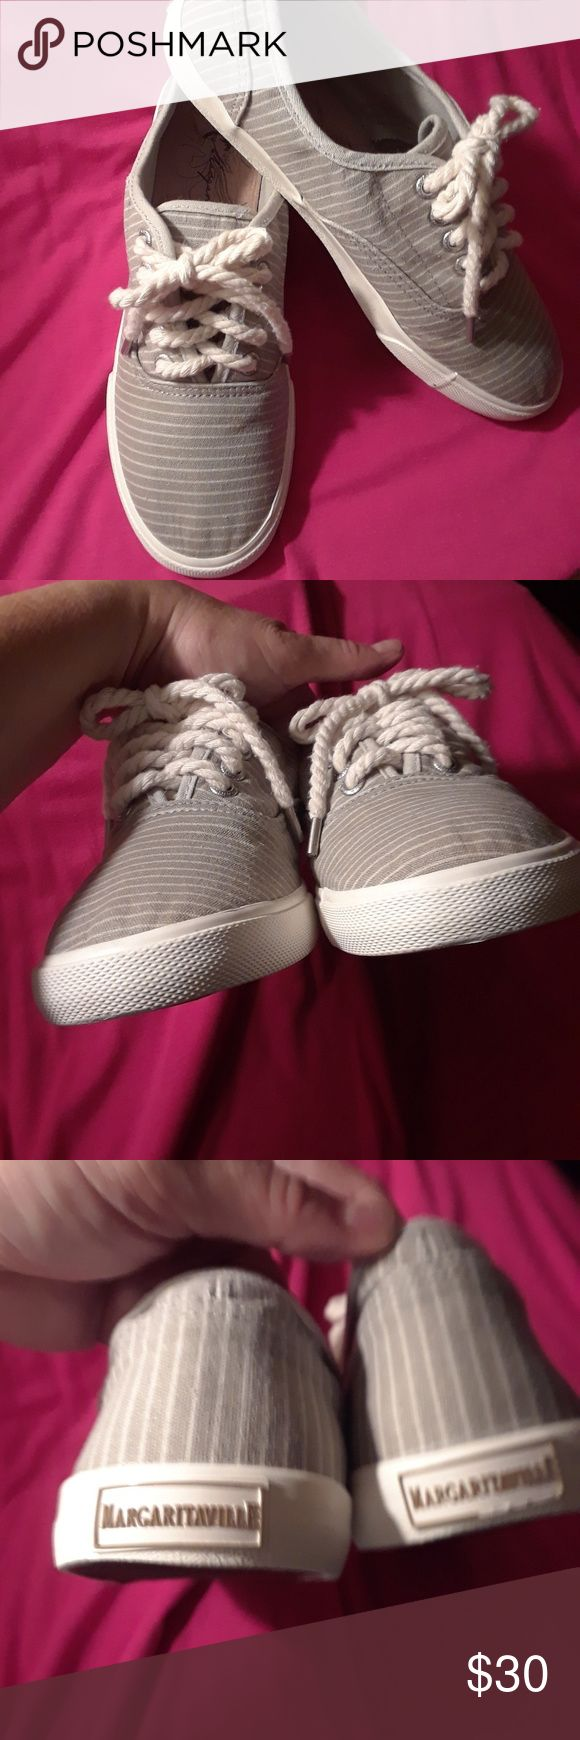 ** REMOVING 10/1 ** EUC Margaritaville Sneakers! Excellent condition, Jimmy Buffet Parrothead striped deck shoe / sneakers in a soft gray & white stripe; rope shoelaces!  Please review all pics carefully and feel free to ask questions. Margaritaville Shoes Sneakers